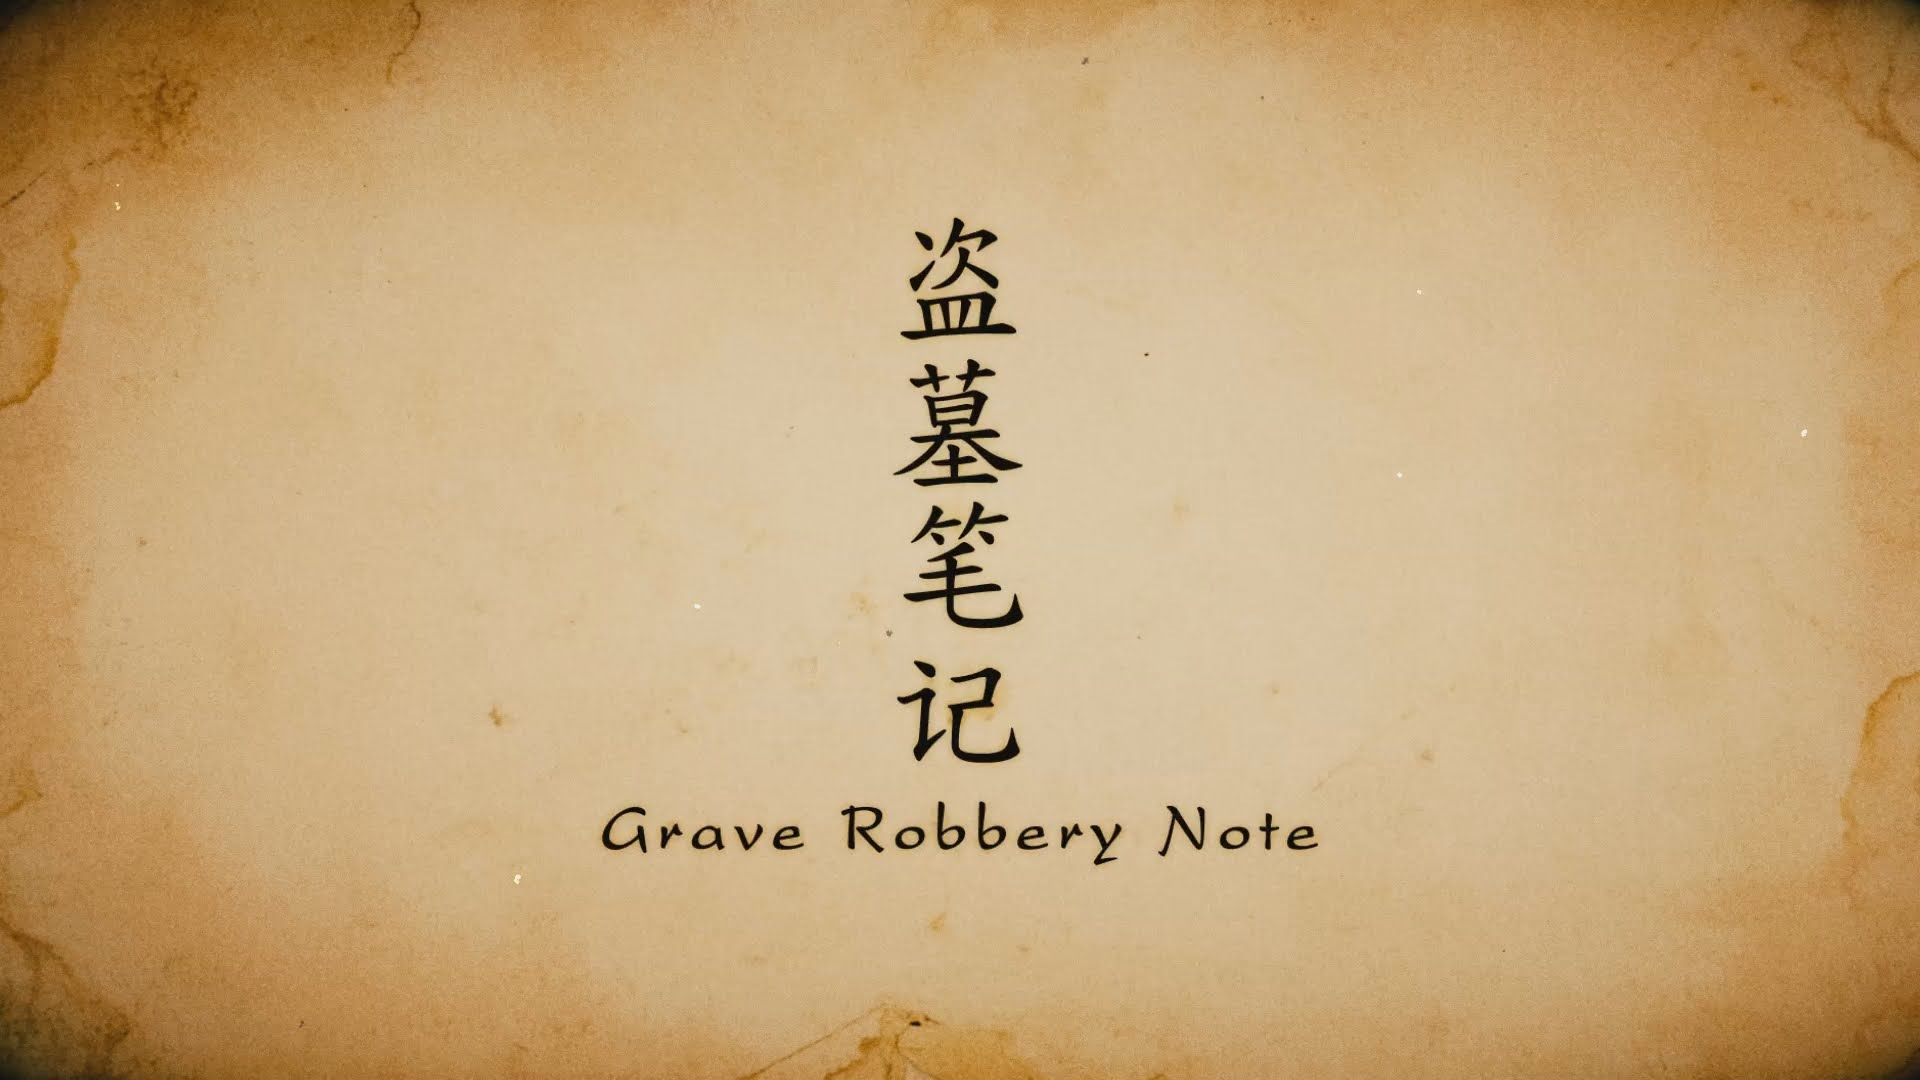 HQ Grave Robbery Note Wallpapers | File 111.75Kb